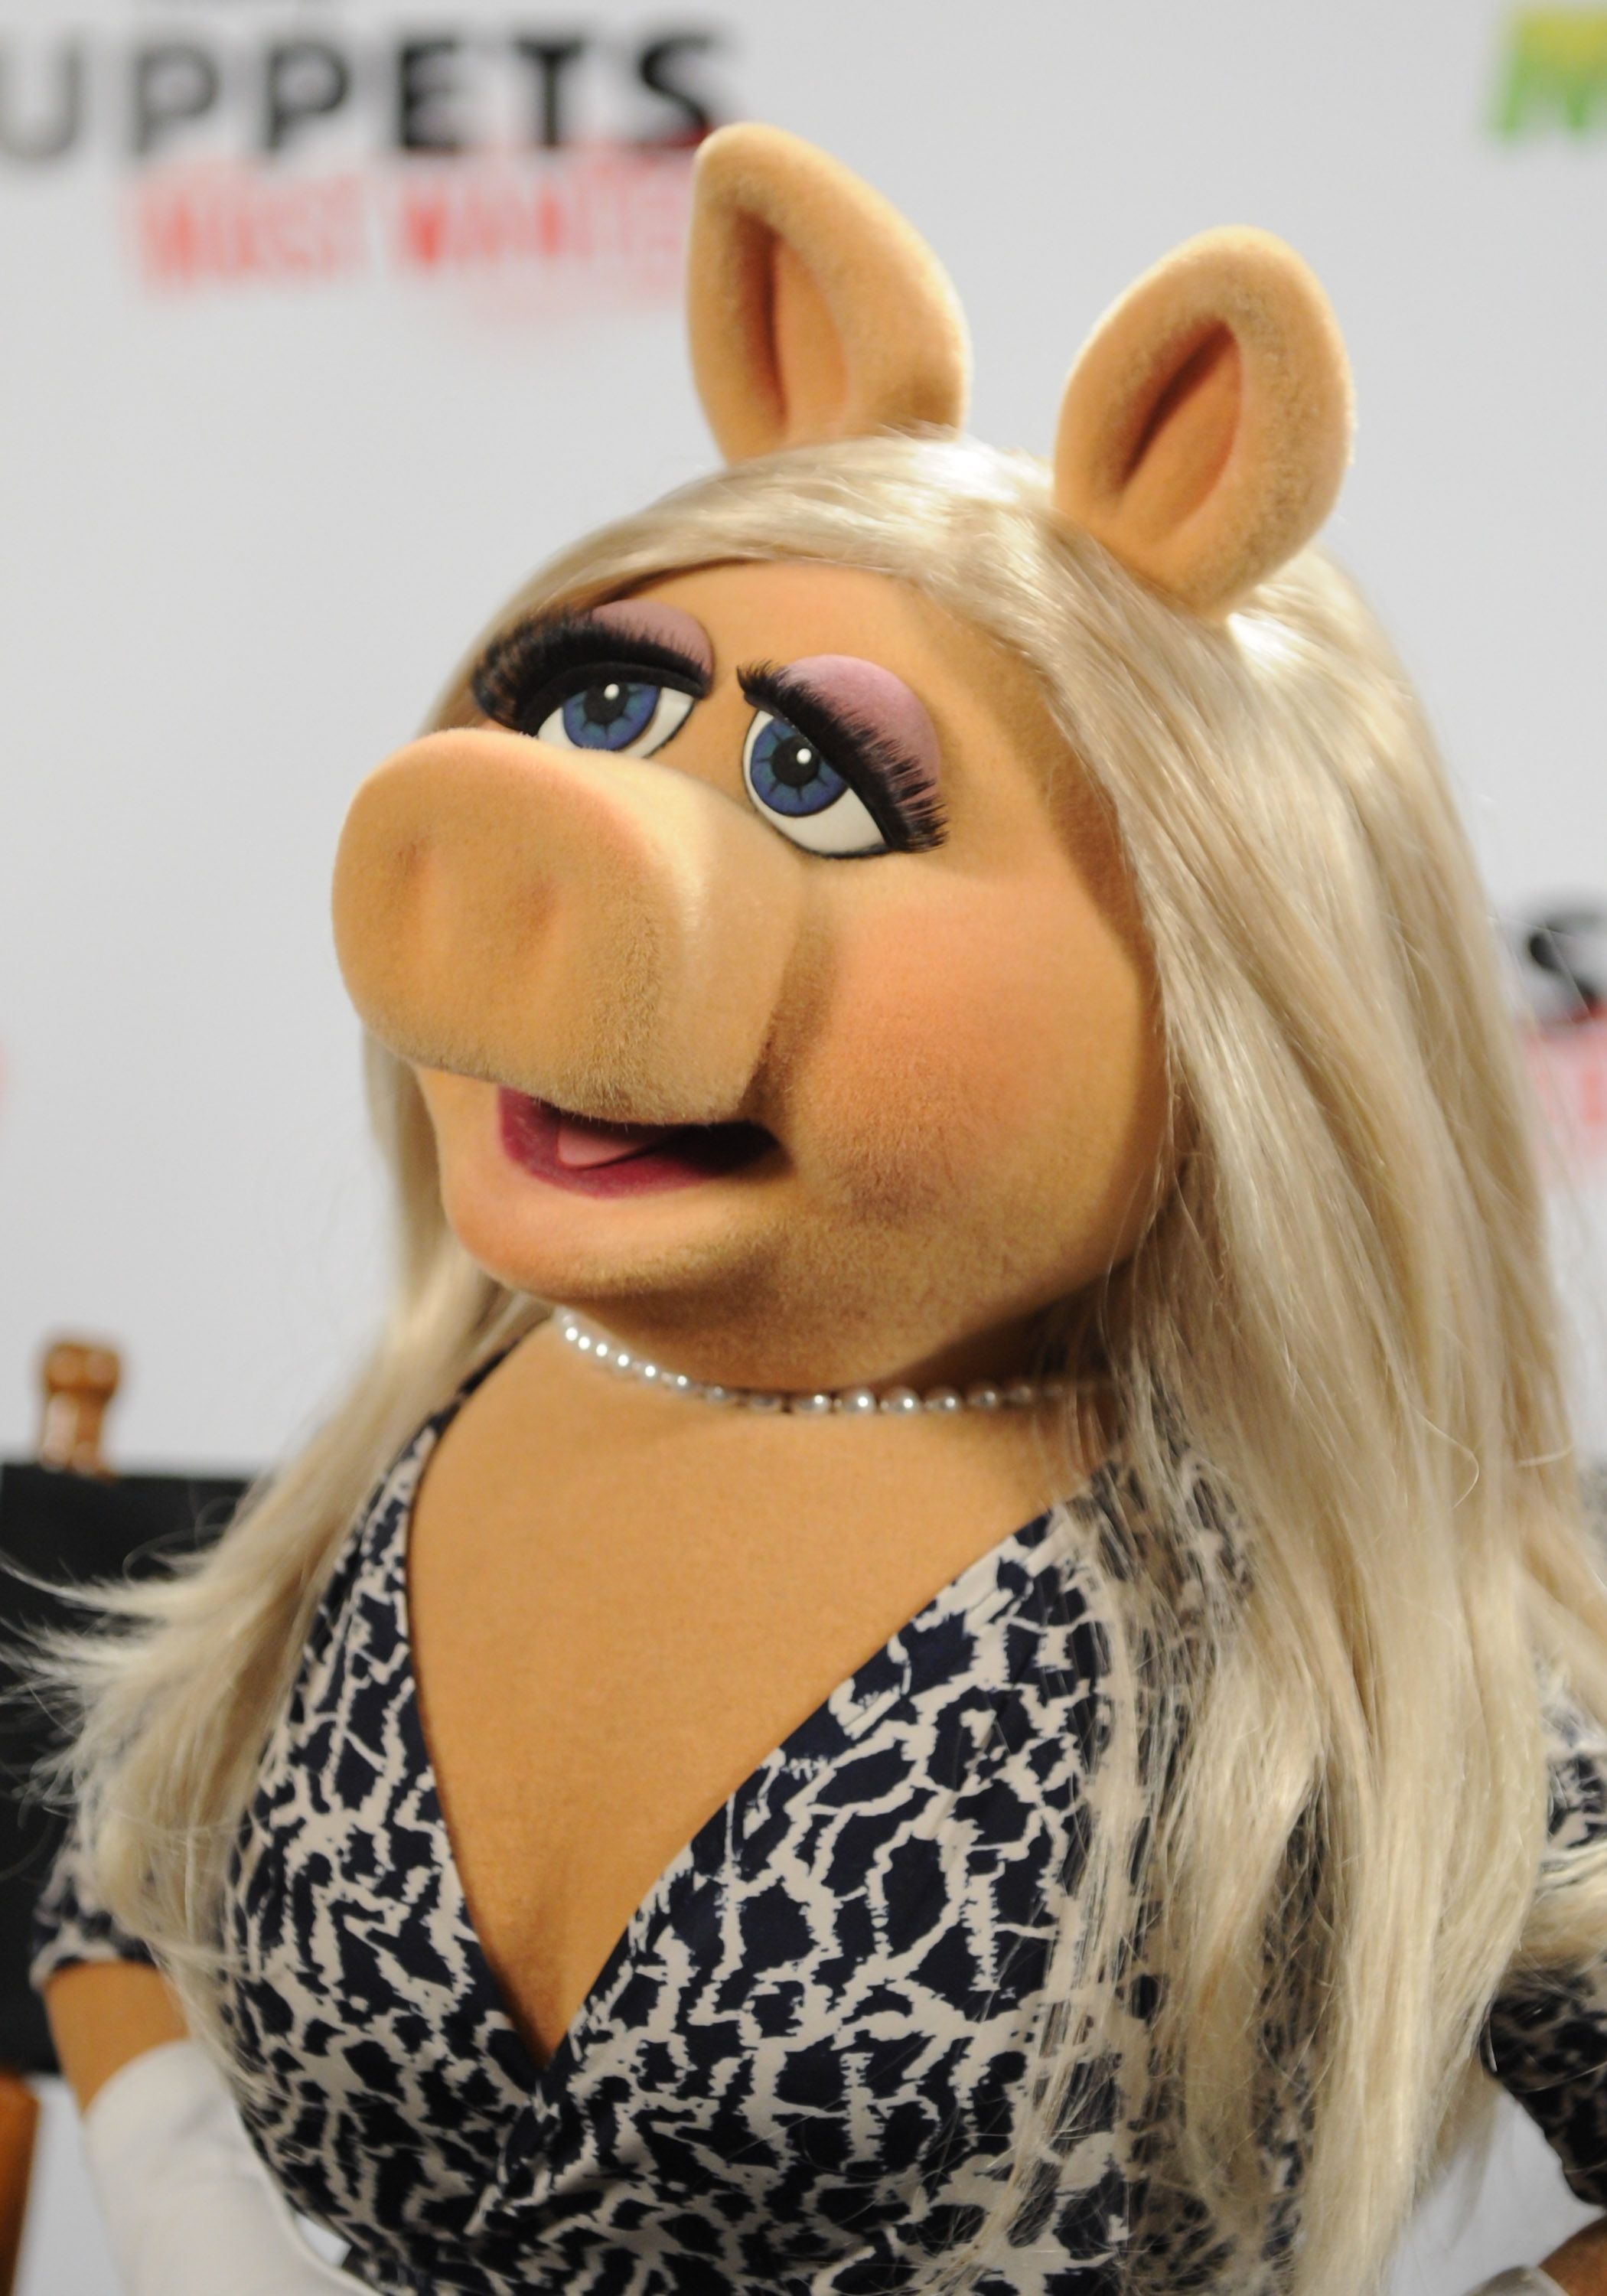 10 Unforgettable Beauty Lessons from Miss Piggy